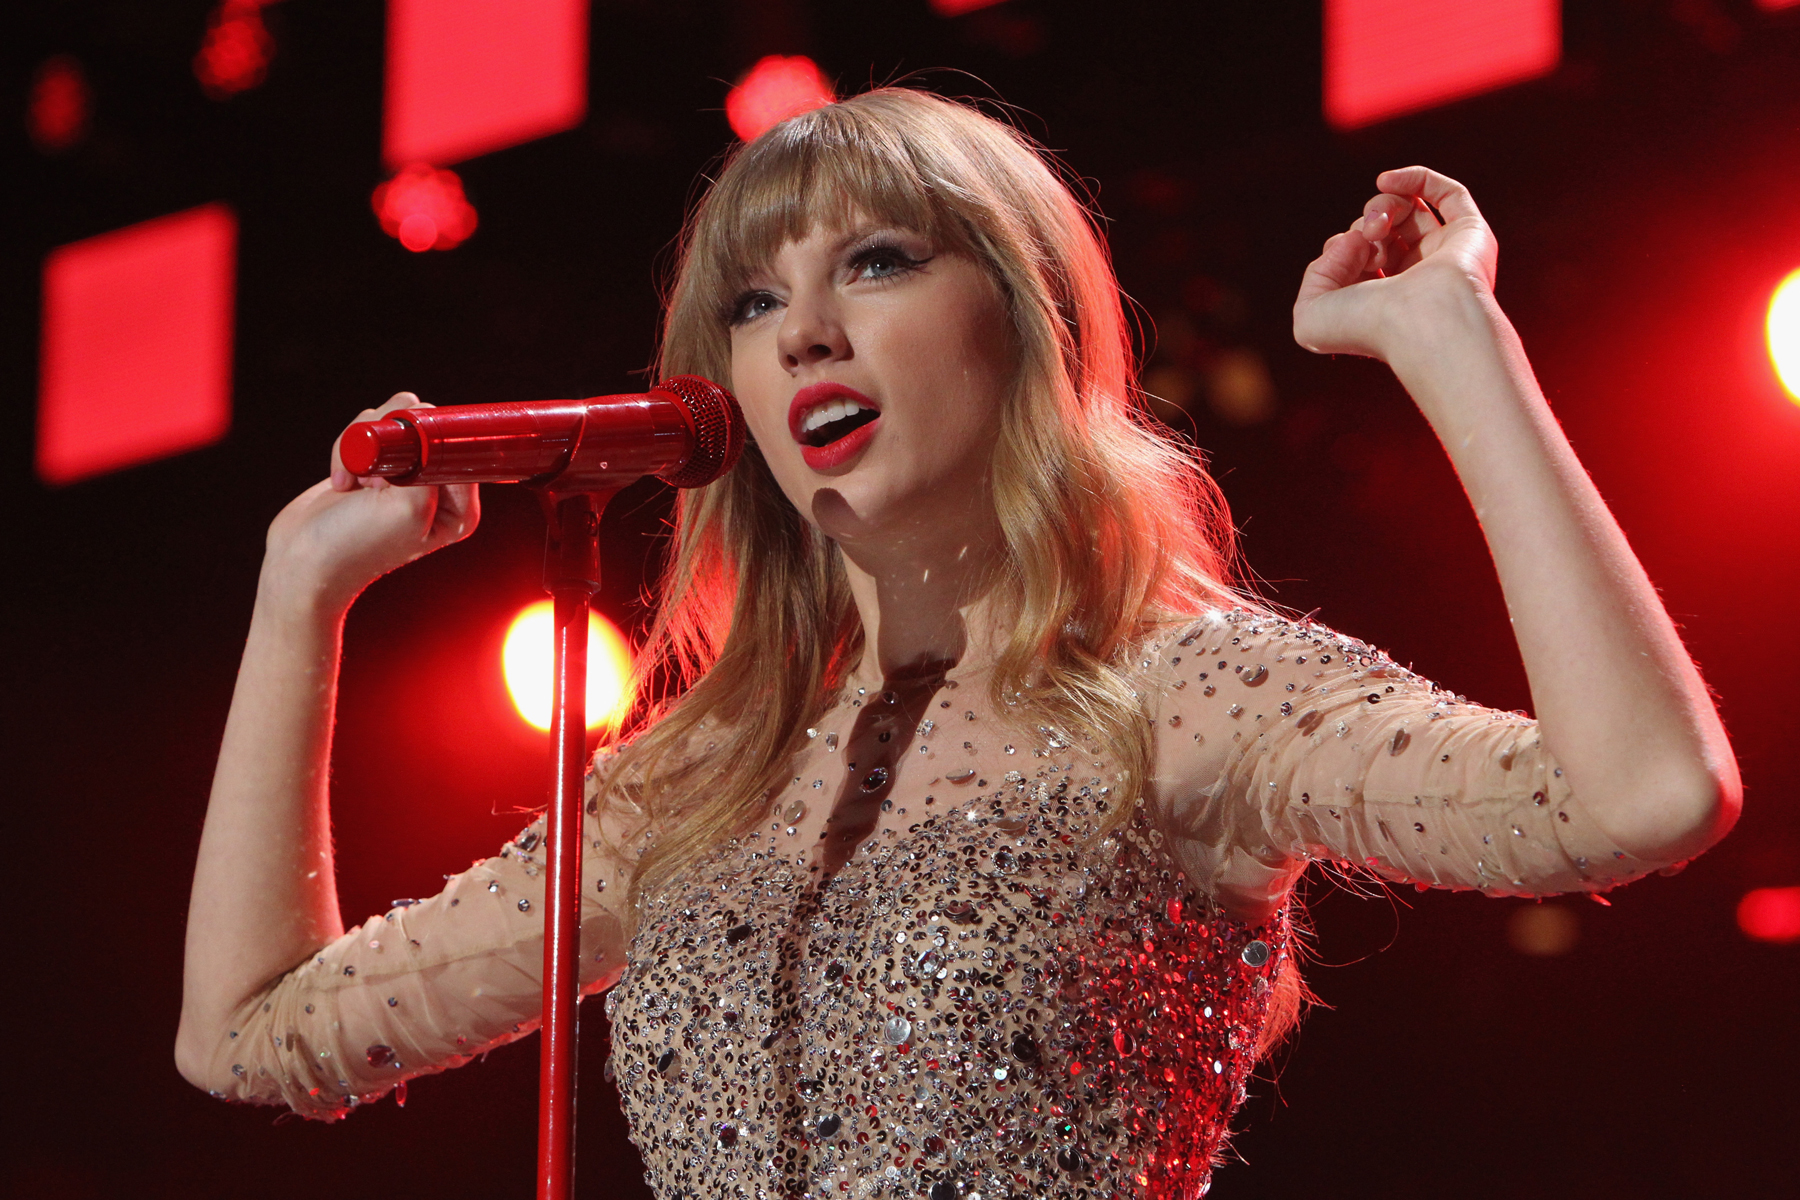 Taylor Swift performs onstage during Z100's Jingle Ball 2012, at Madison Square Garden on December 7, 2012 in New York City.